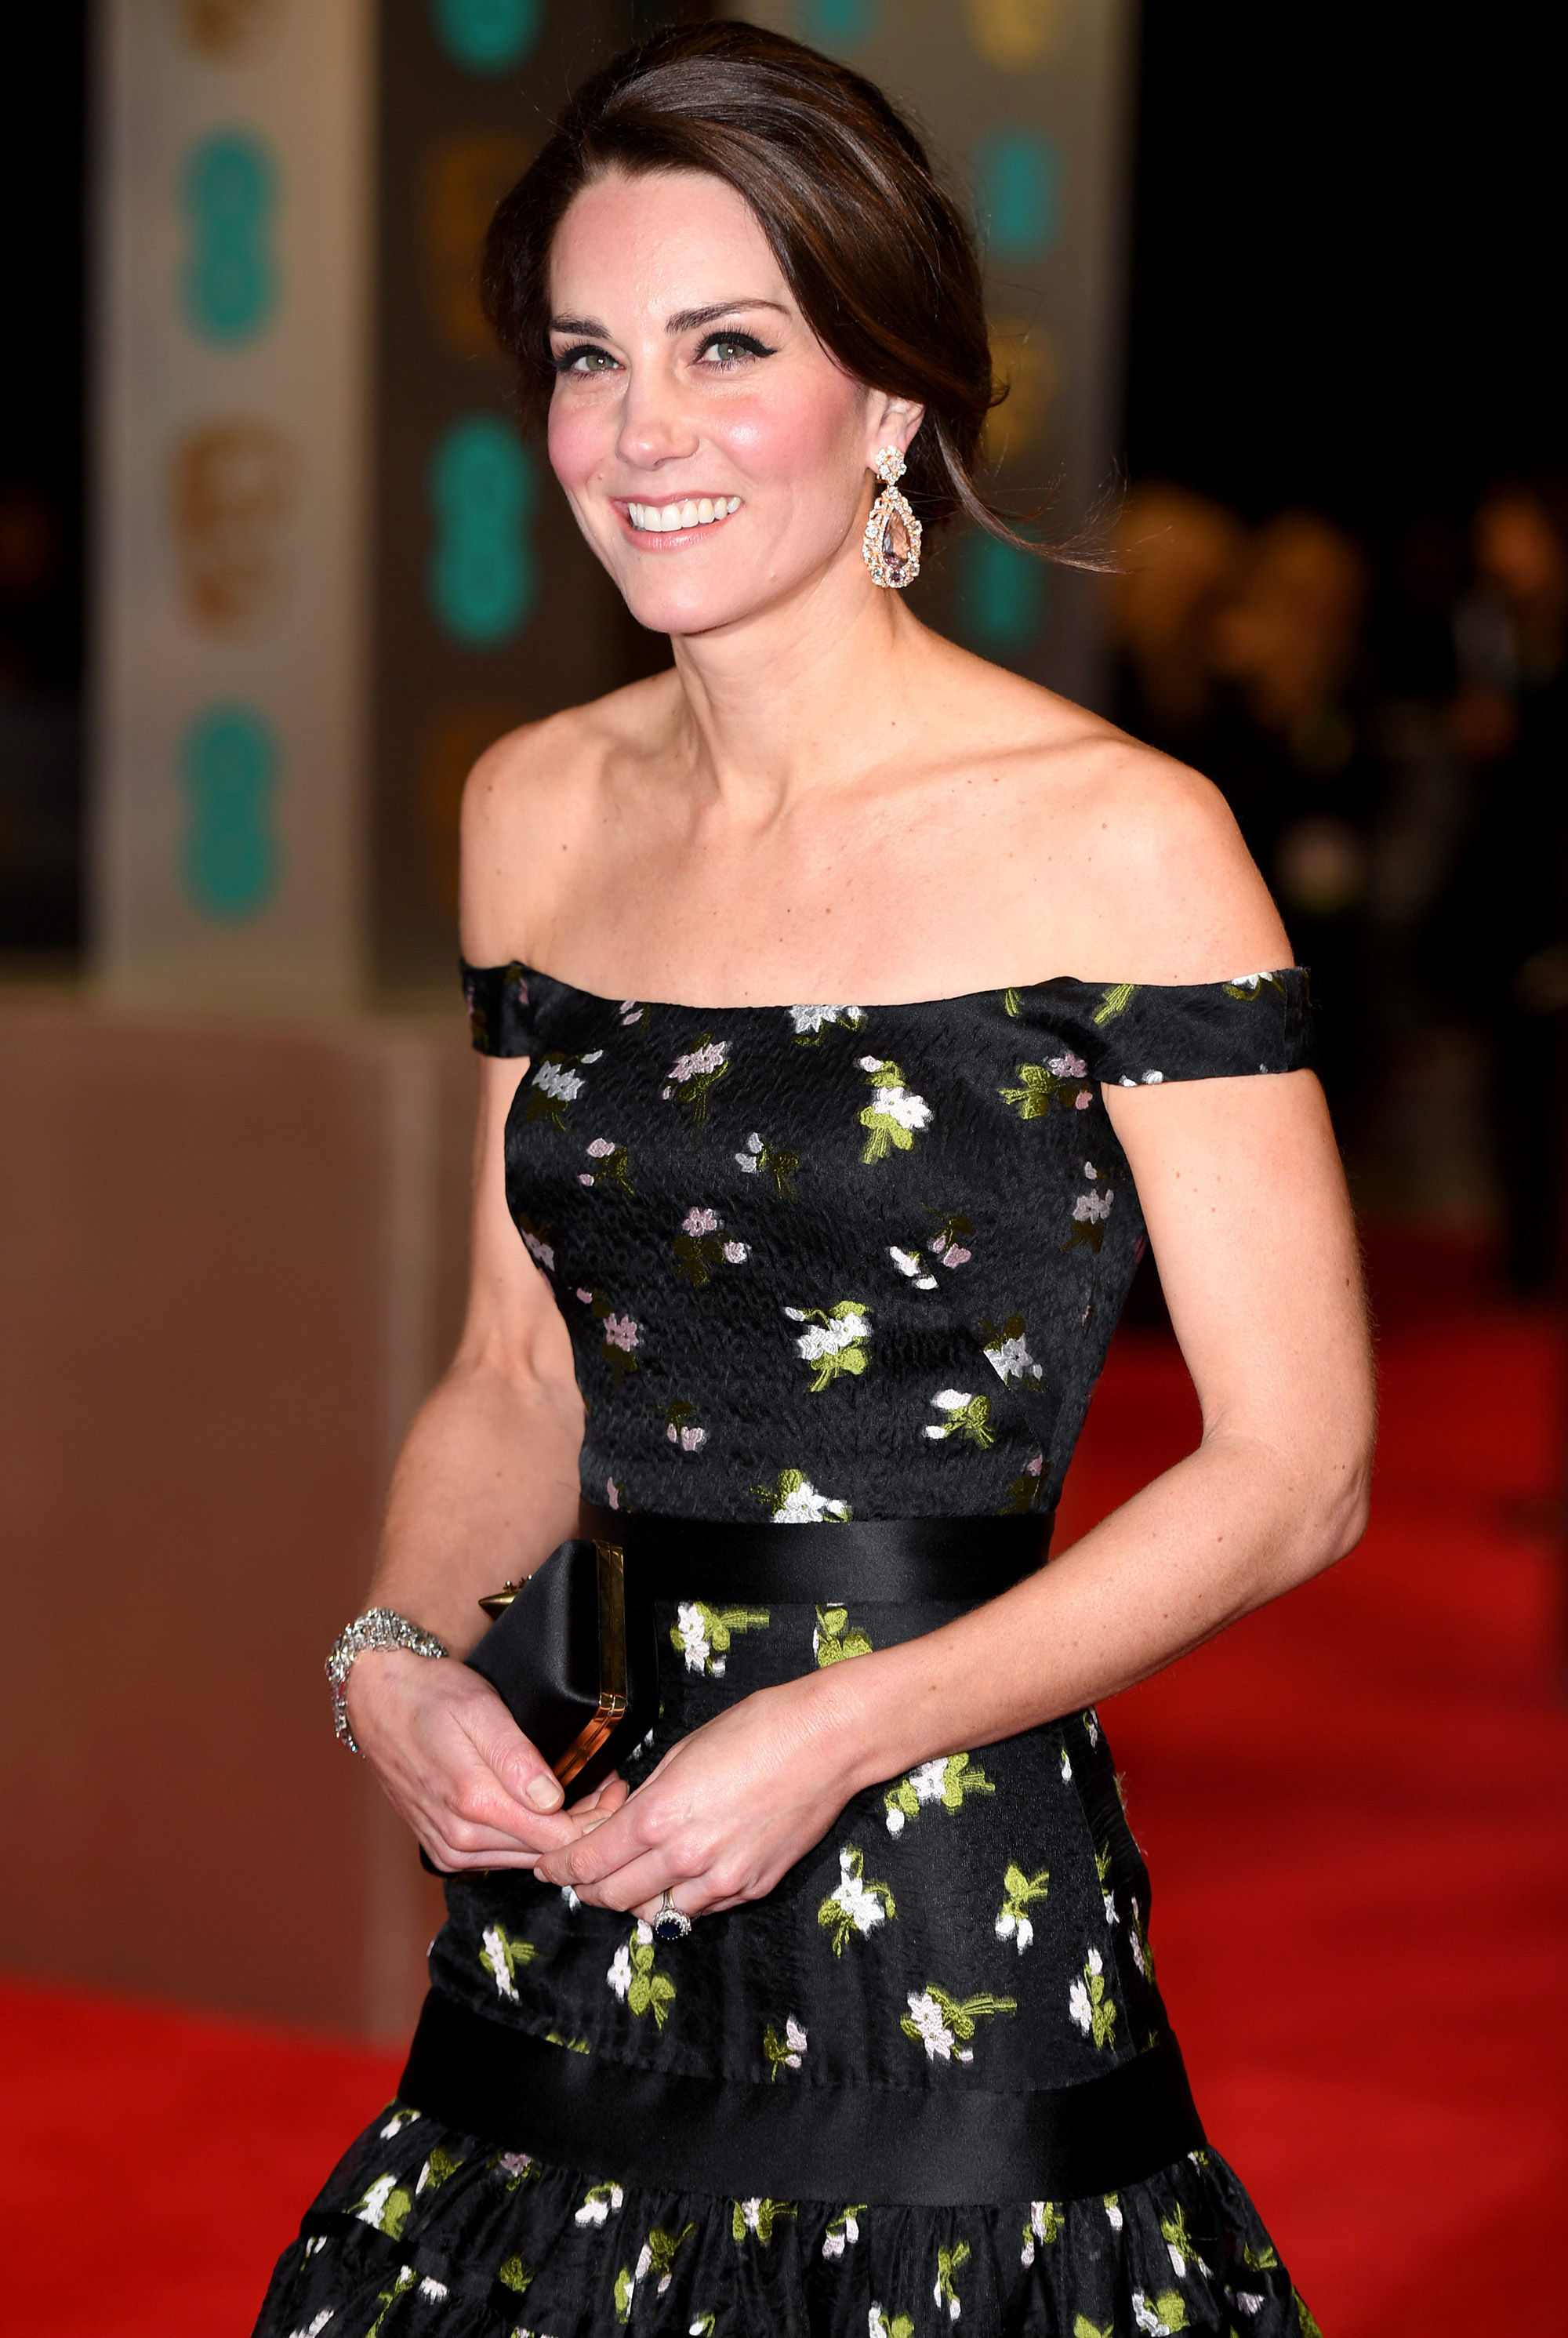 The Duchess of Cambridge attended the BAFTAs, wearing an off the shoulder Alexander McQueen gown.